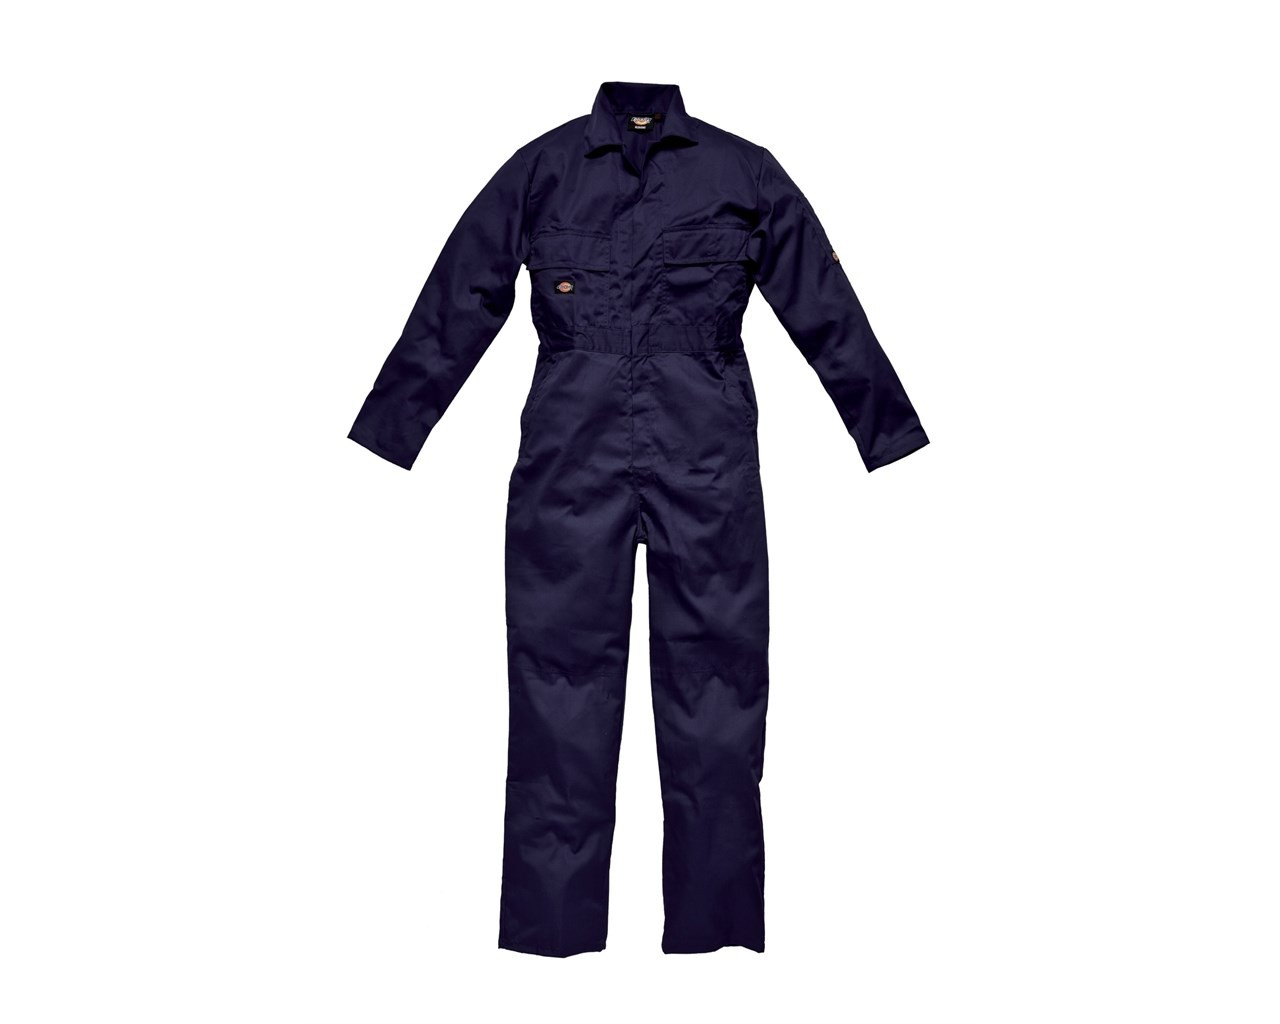 Dickies Redhawk Coverall - Navy Blue - 38 T